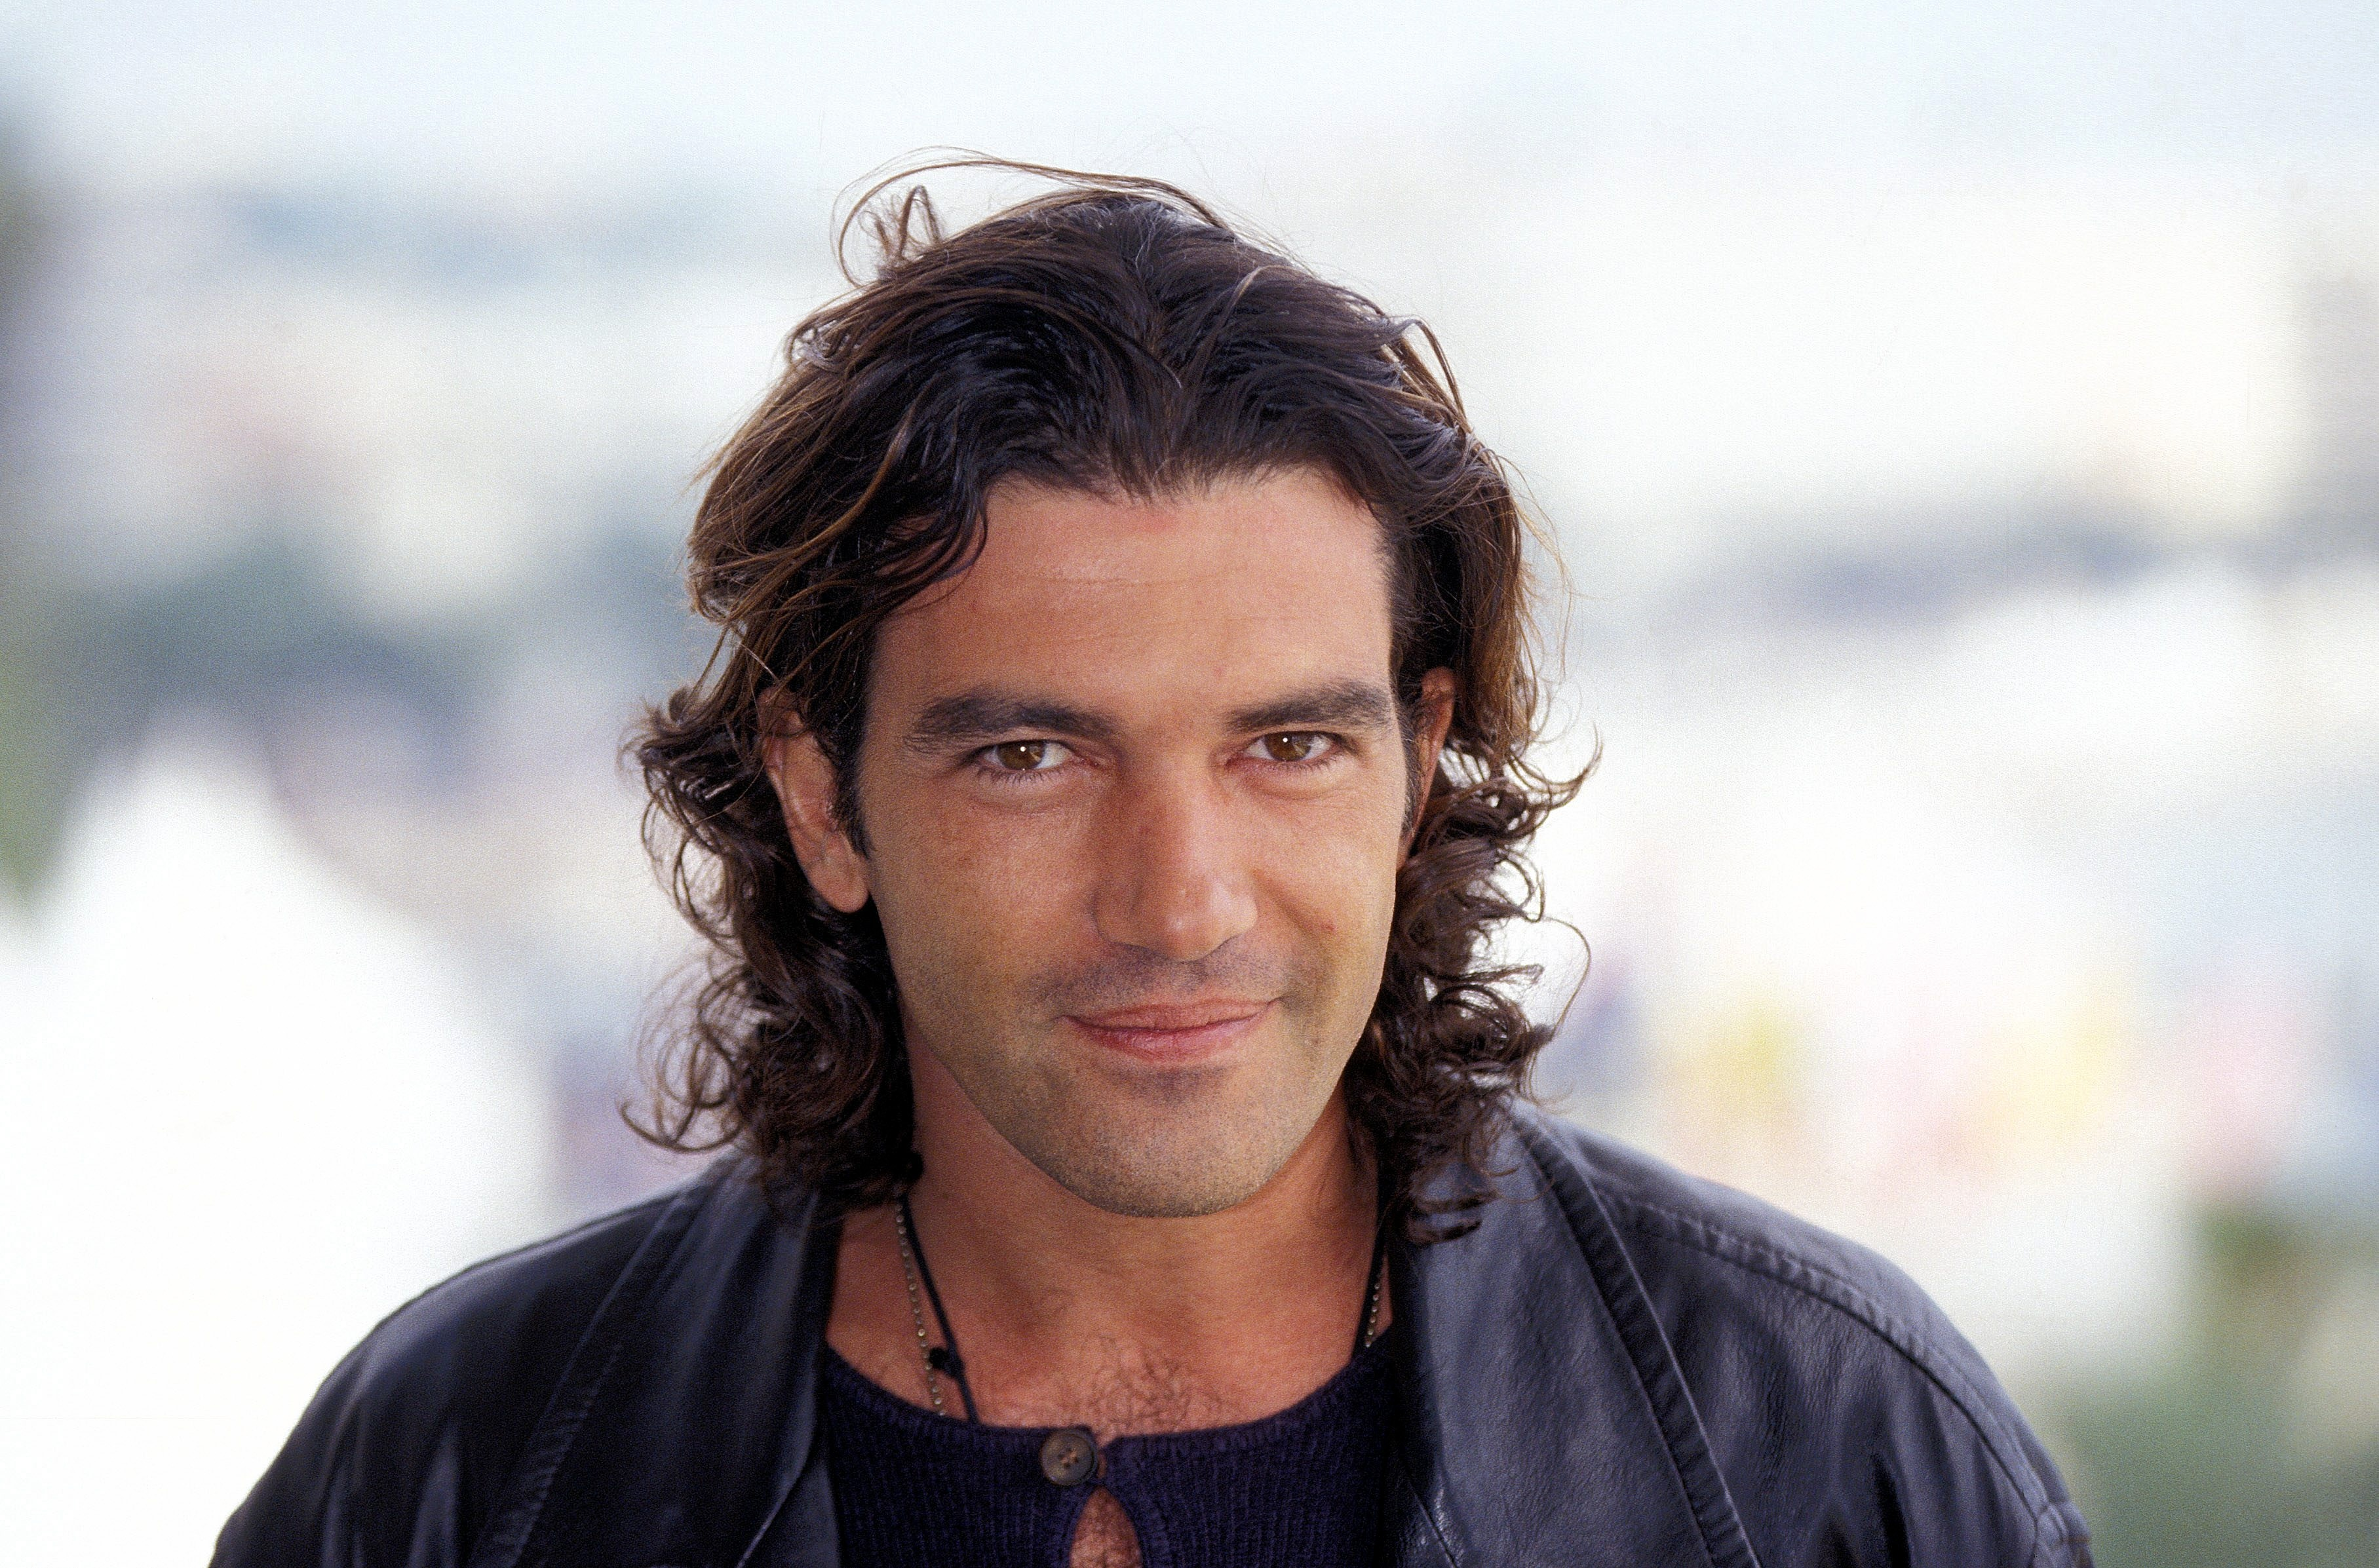 Photo flashback: Antonio Banderas's life and career in pictures | Gallery |  Wonderwall.com